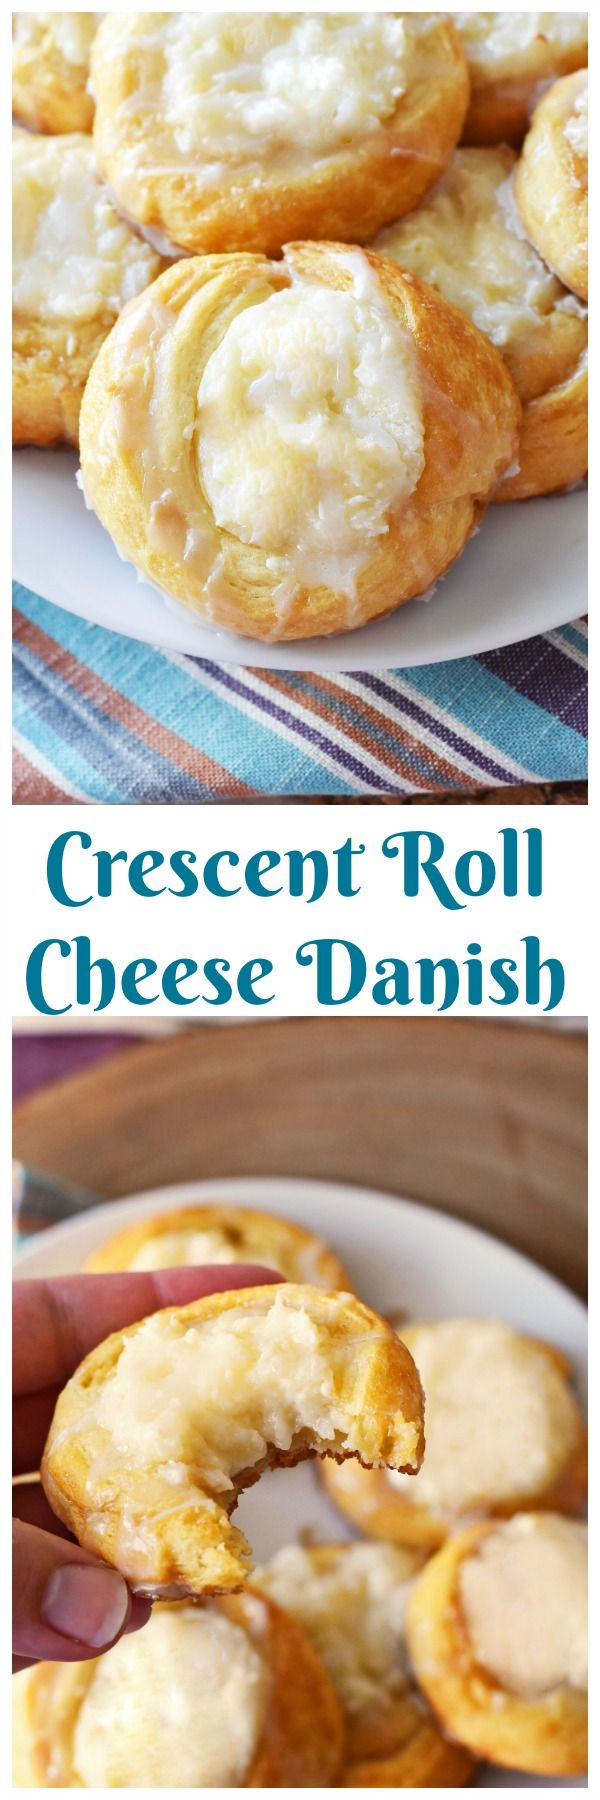 Easy Crescent Roll Cream Chese Danish Recipe.